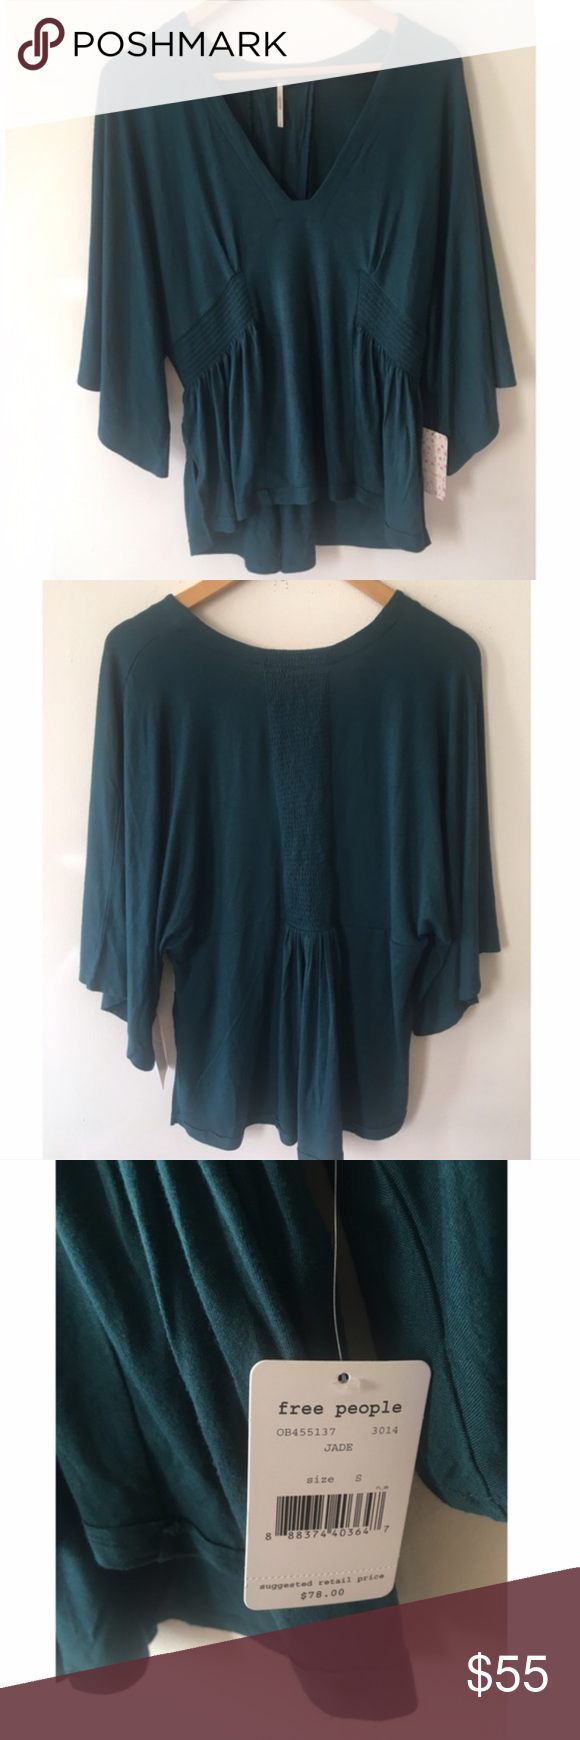 Free People high low top Free People beautiful high low top with dolman   3/4 sleeve in the color Jade. NWT Free People Tops Blouses